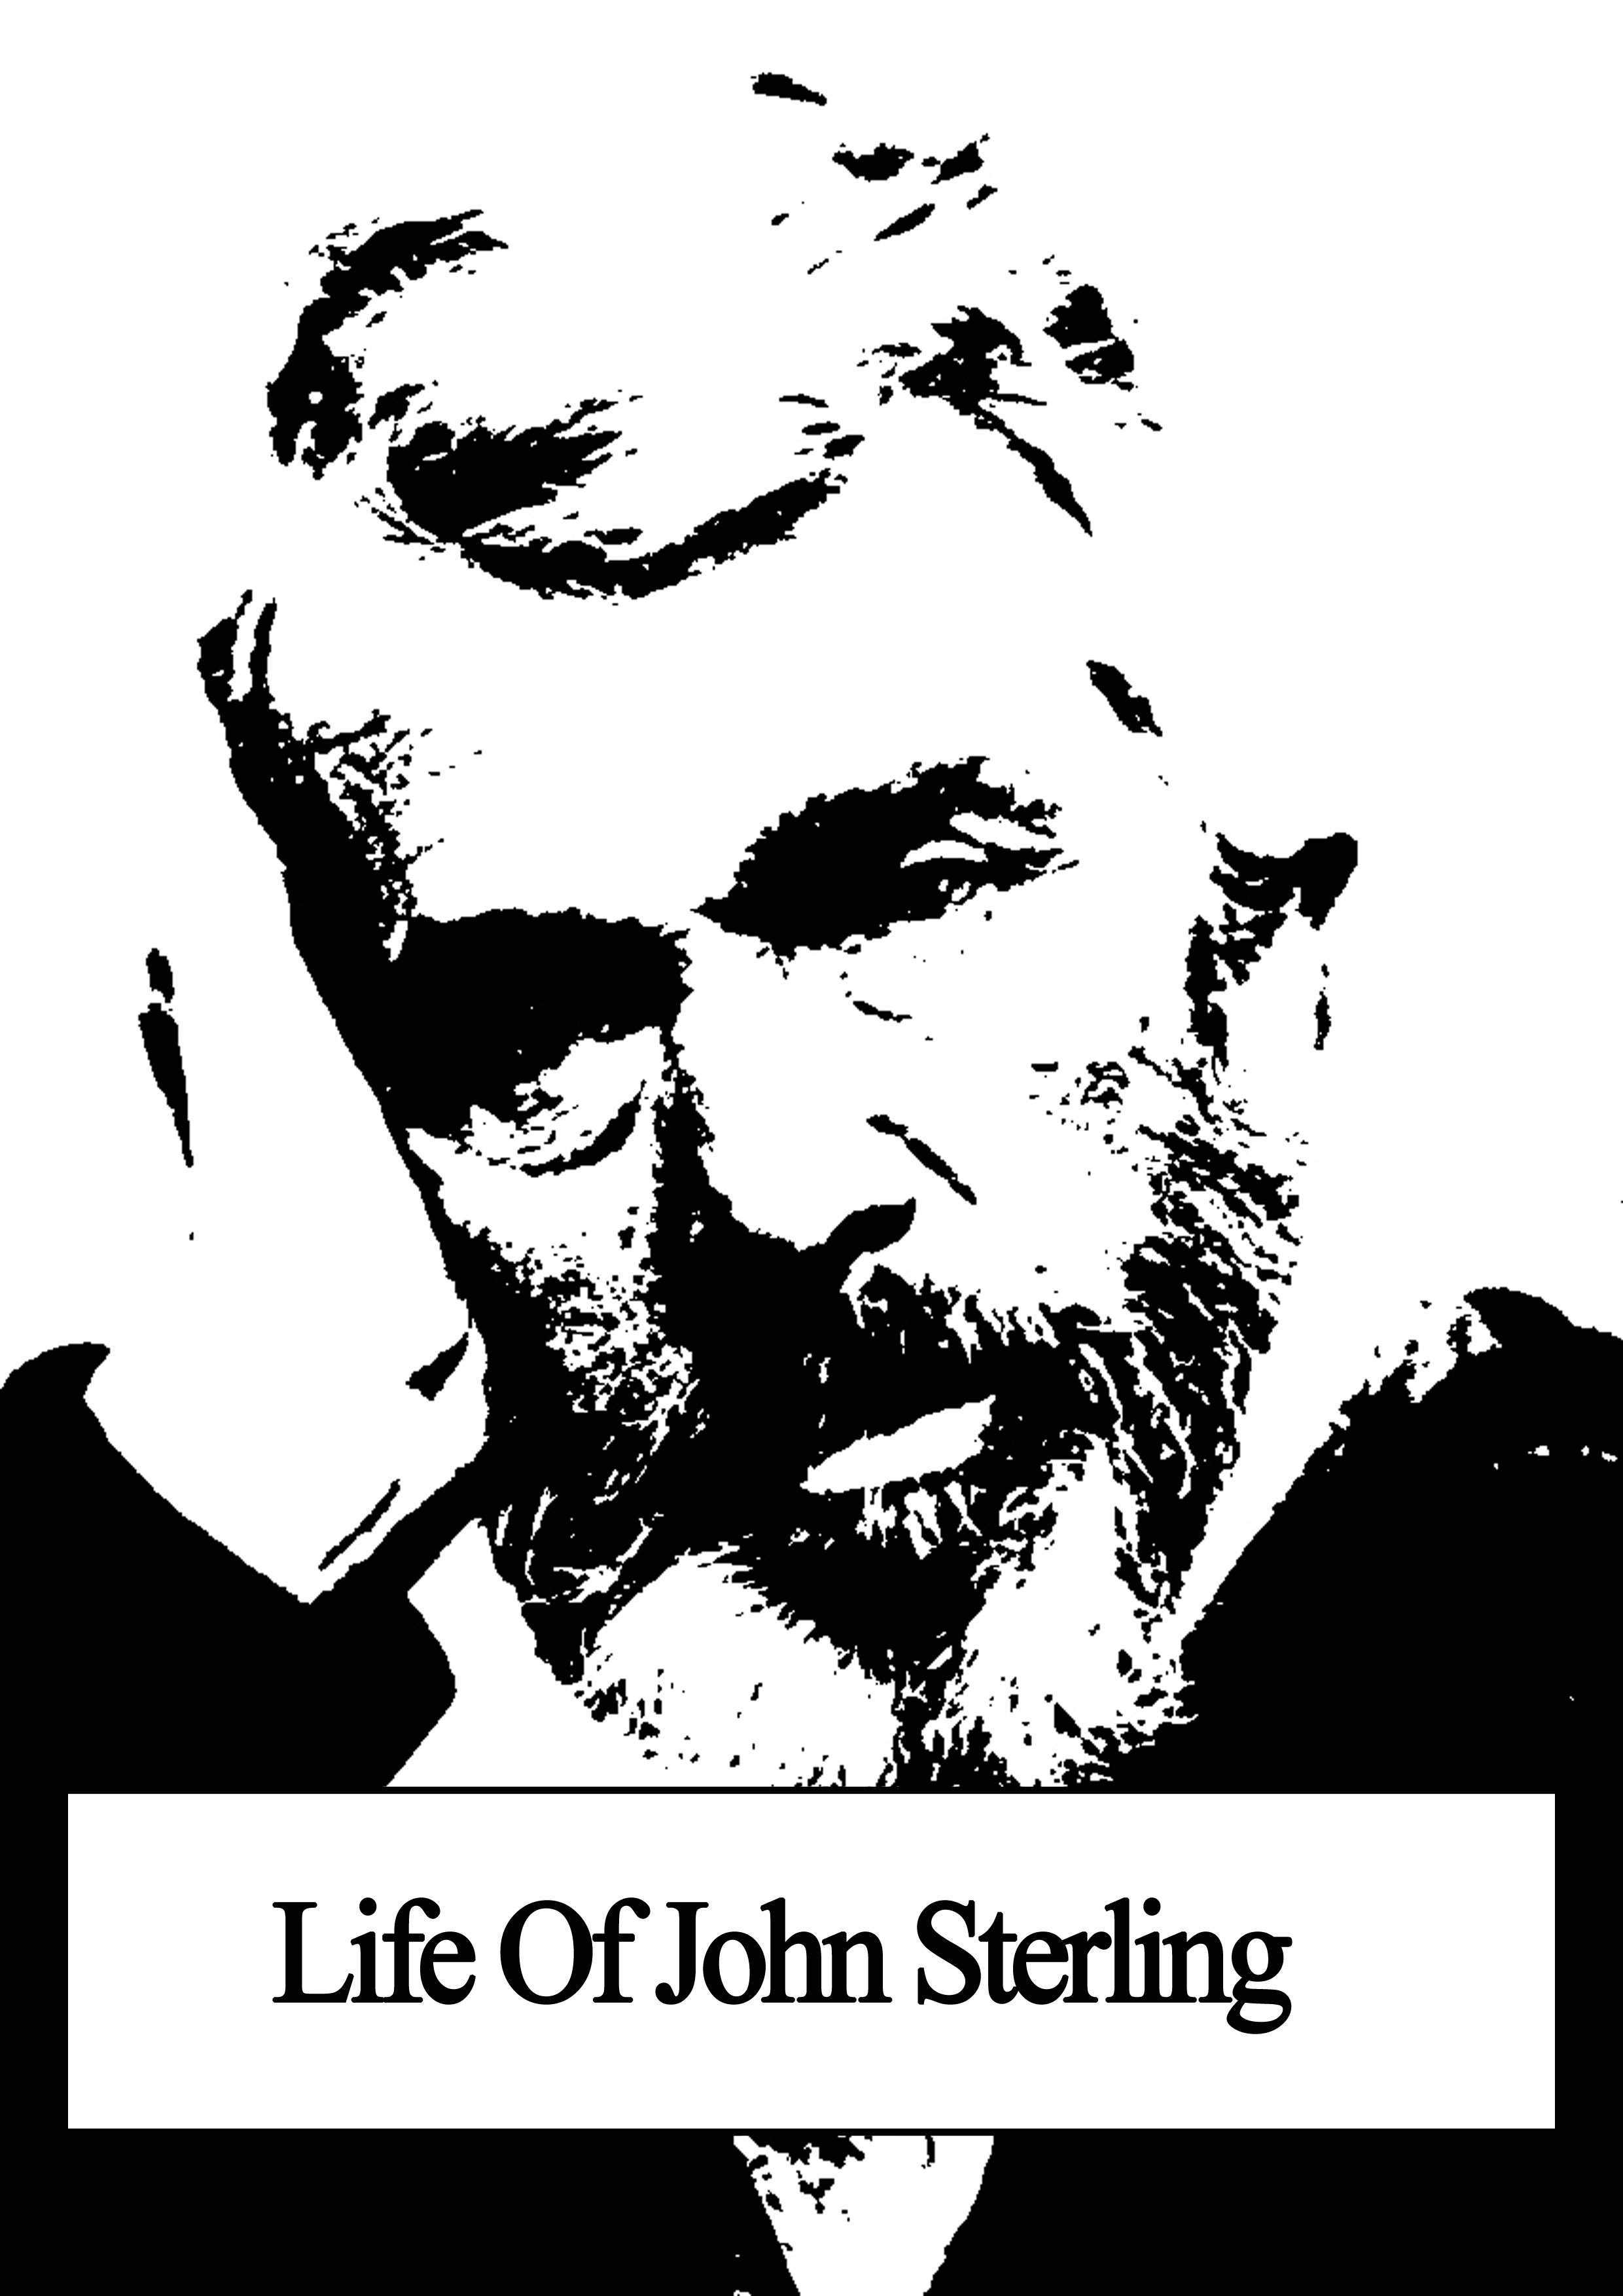 Life Of John Sterling By: Thomas Carlyle